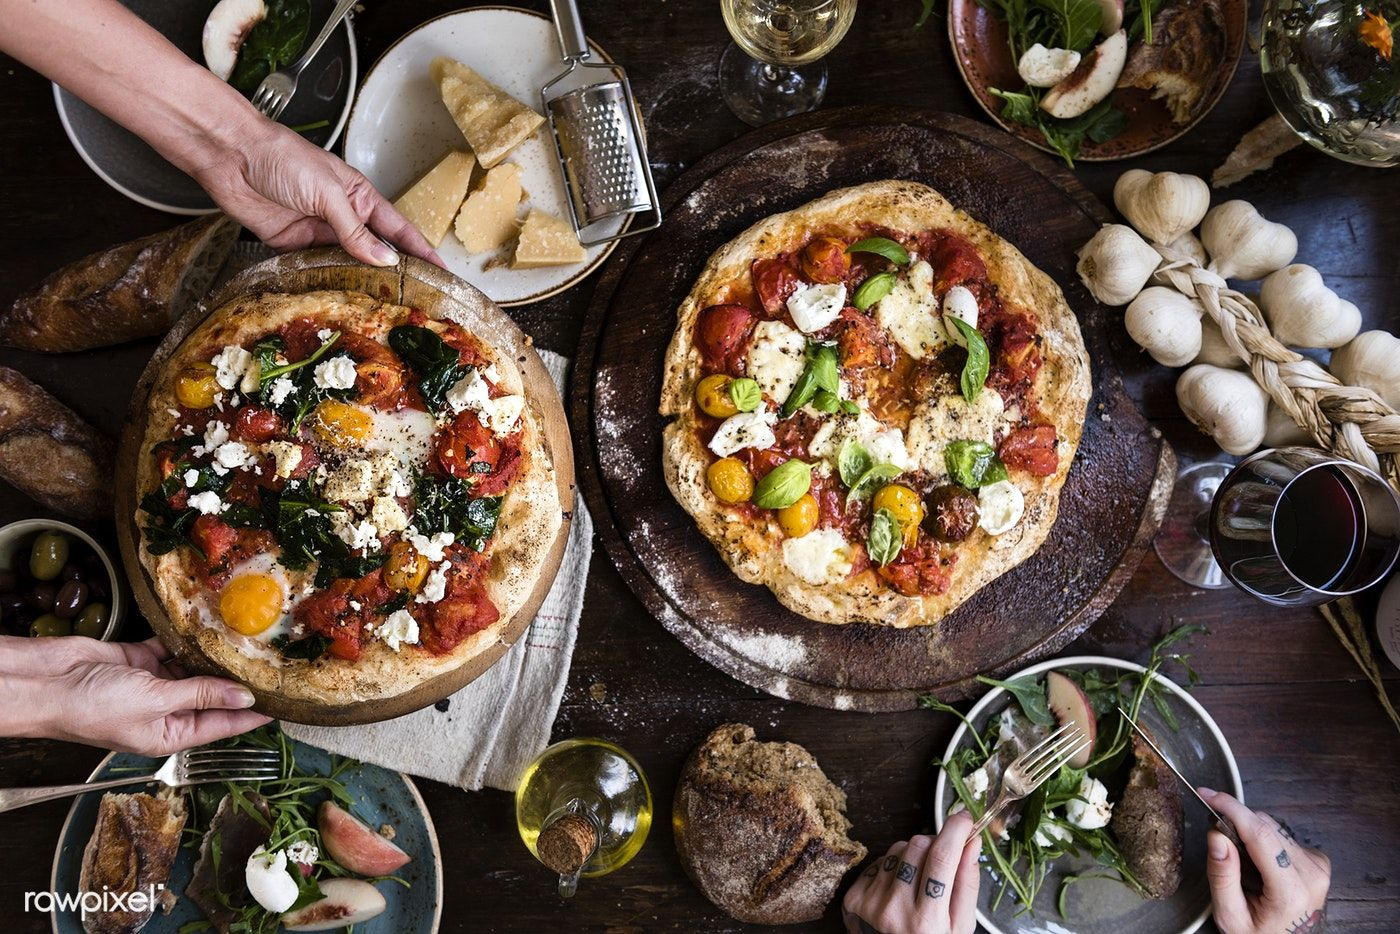 Download Premium Image Of Serving A Pizza Food Photography